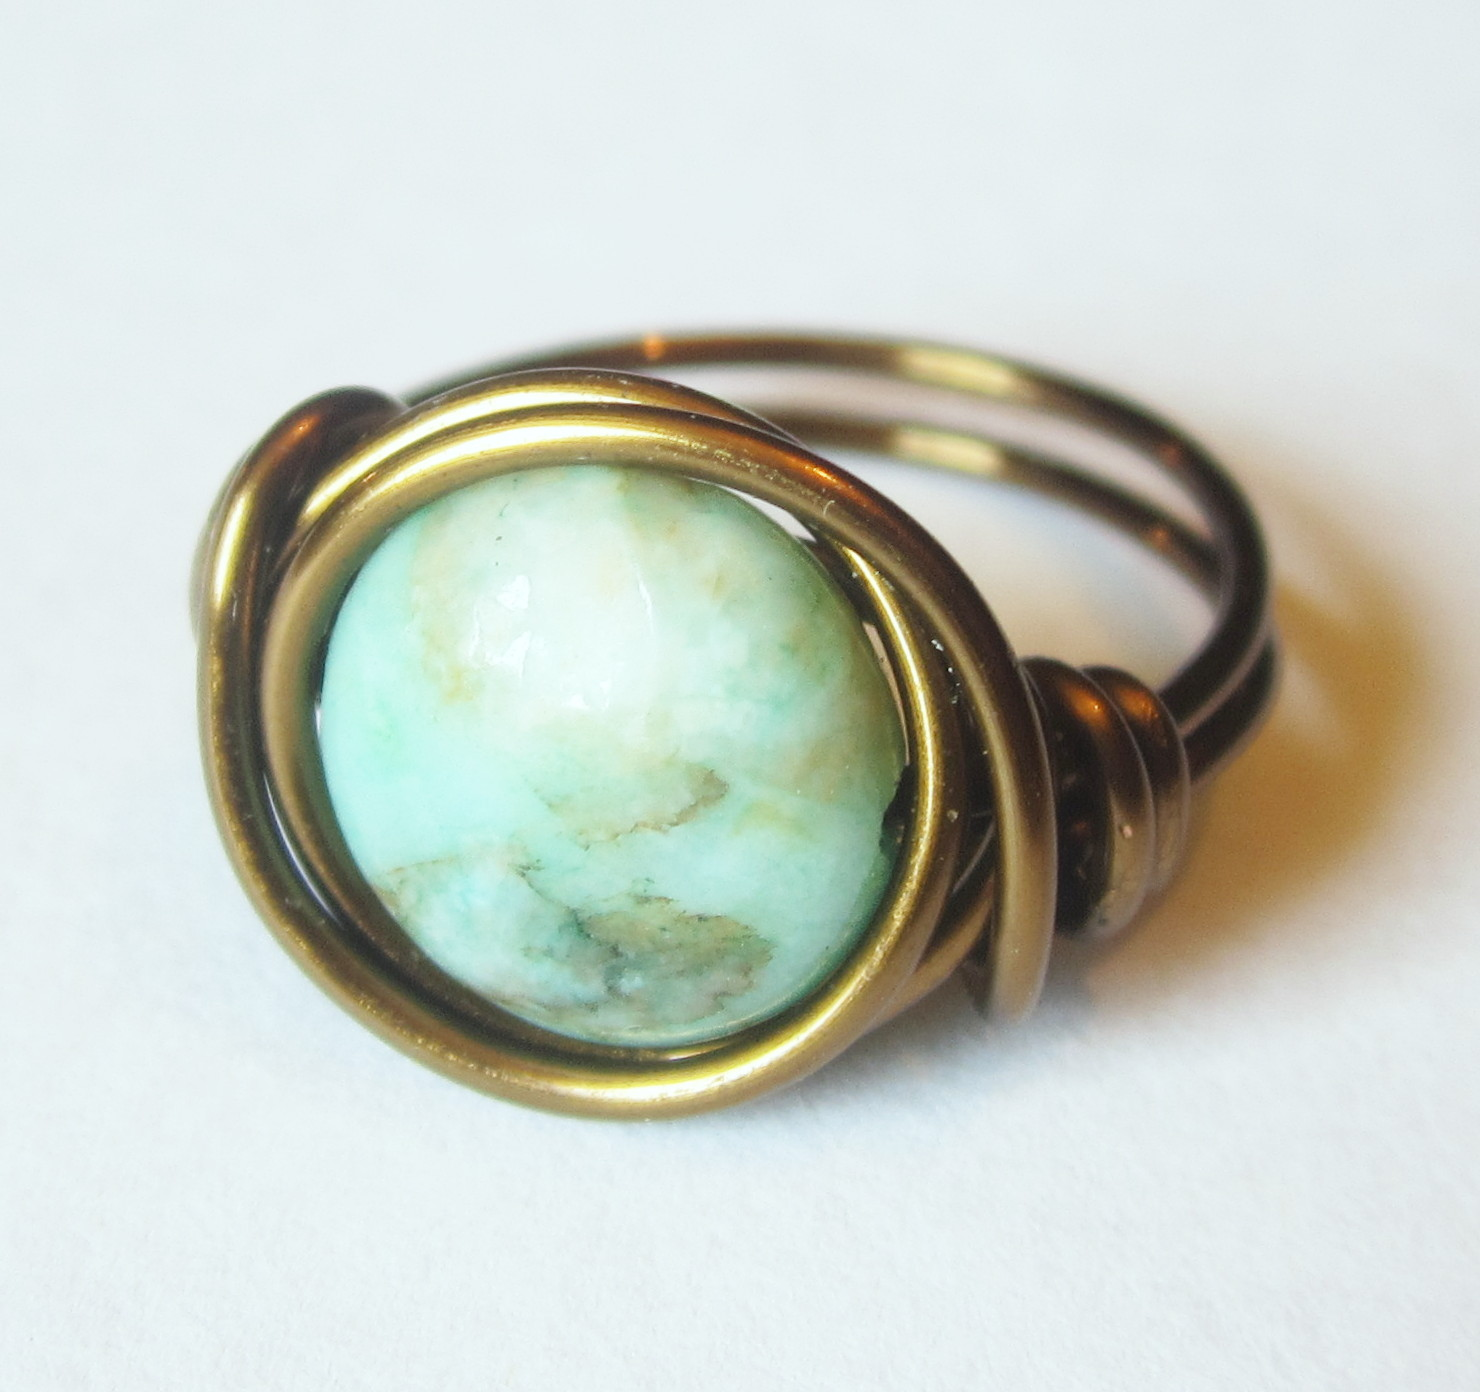 4778 together with Essay furthermore Green Matrix Jasper Disc Boho Ring Custom Size In Antique Brass additionally Hd Hippie Shoes Wallpapers Amazing Images Cool Windows Wallpapers Download Free Images Artworks Ultra Hd 4k 2560x1440 further 466474473884427599. on hippie patterns